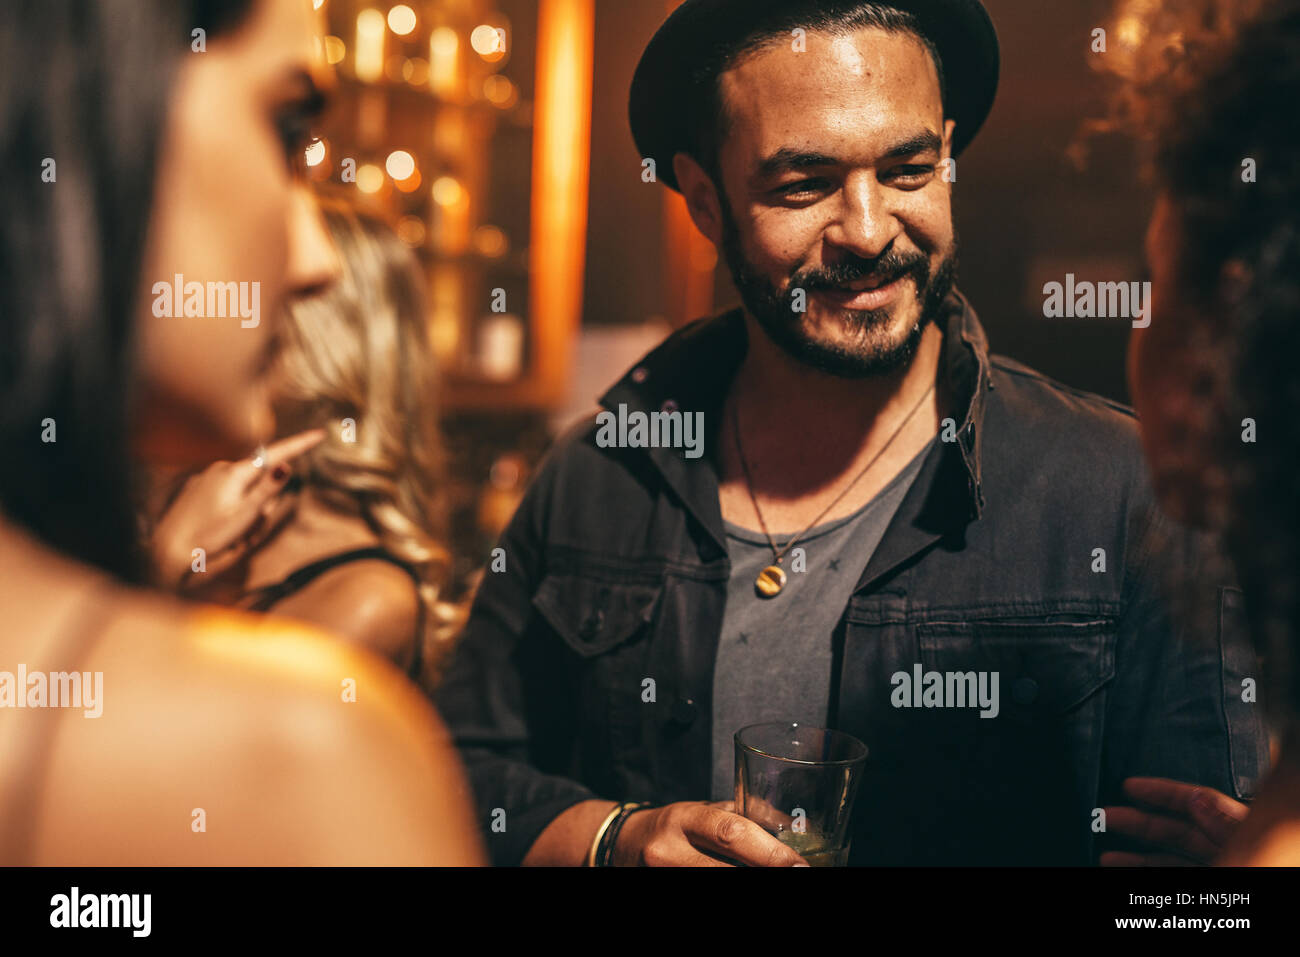 Handsome young man having party with friends at nightclub. Young people at pub having good time. - Stock Image